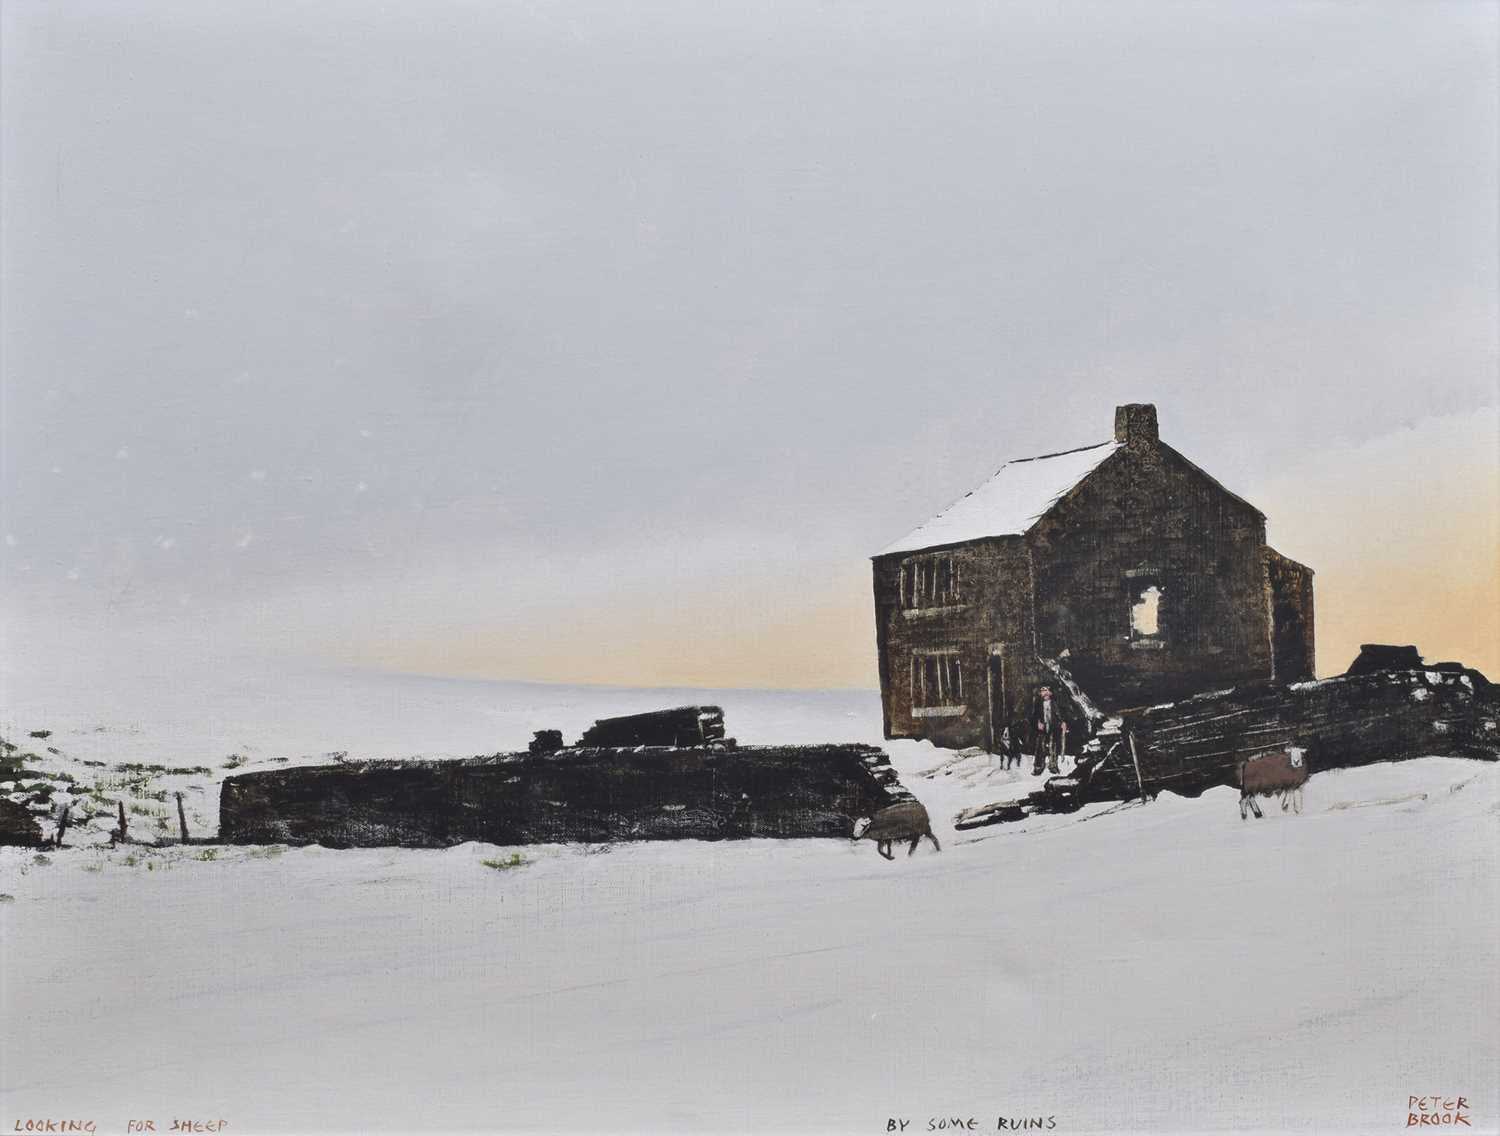 peter brook painting looking for sheep